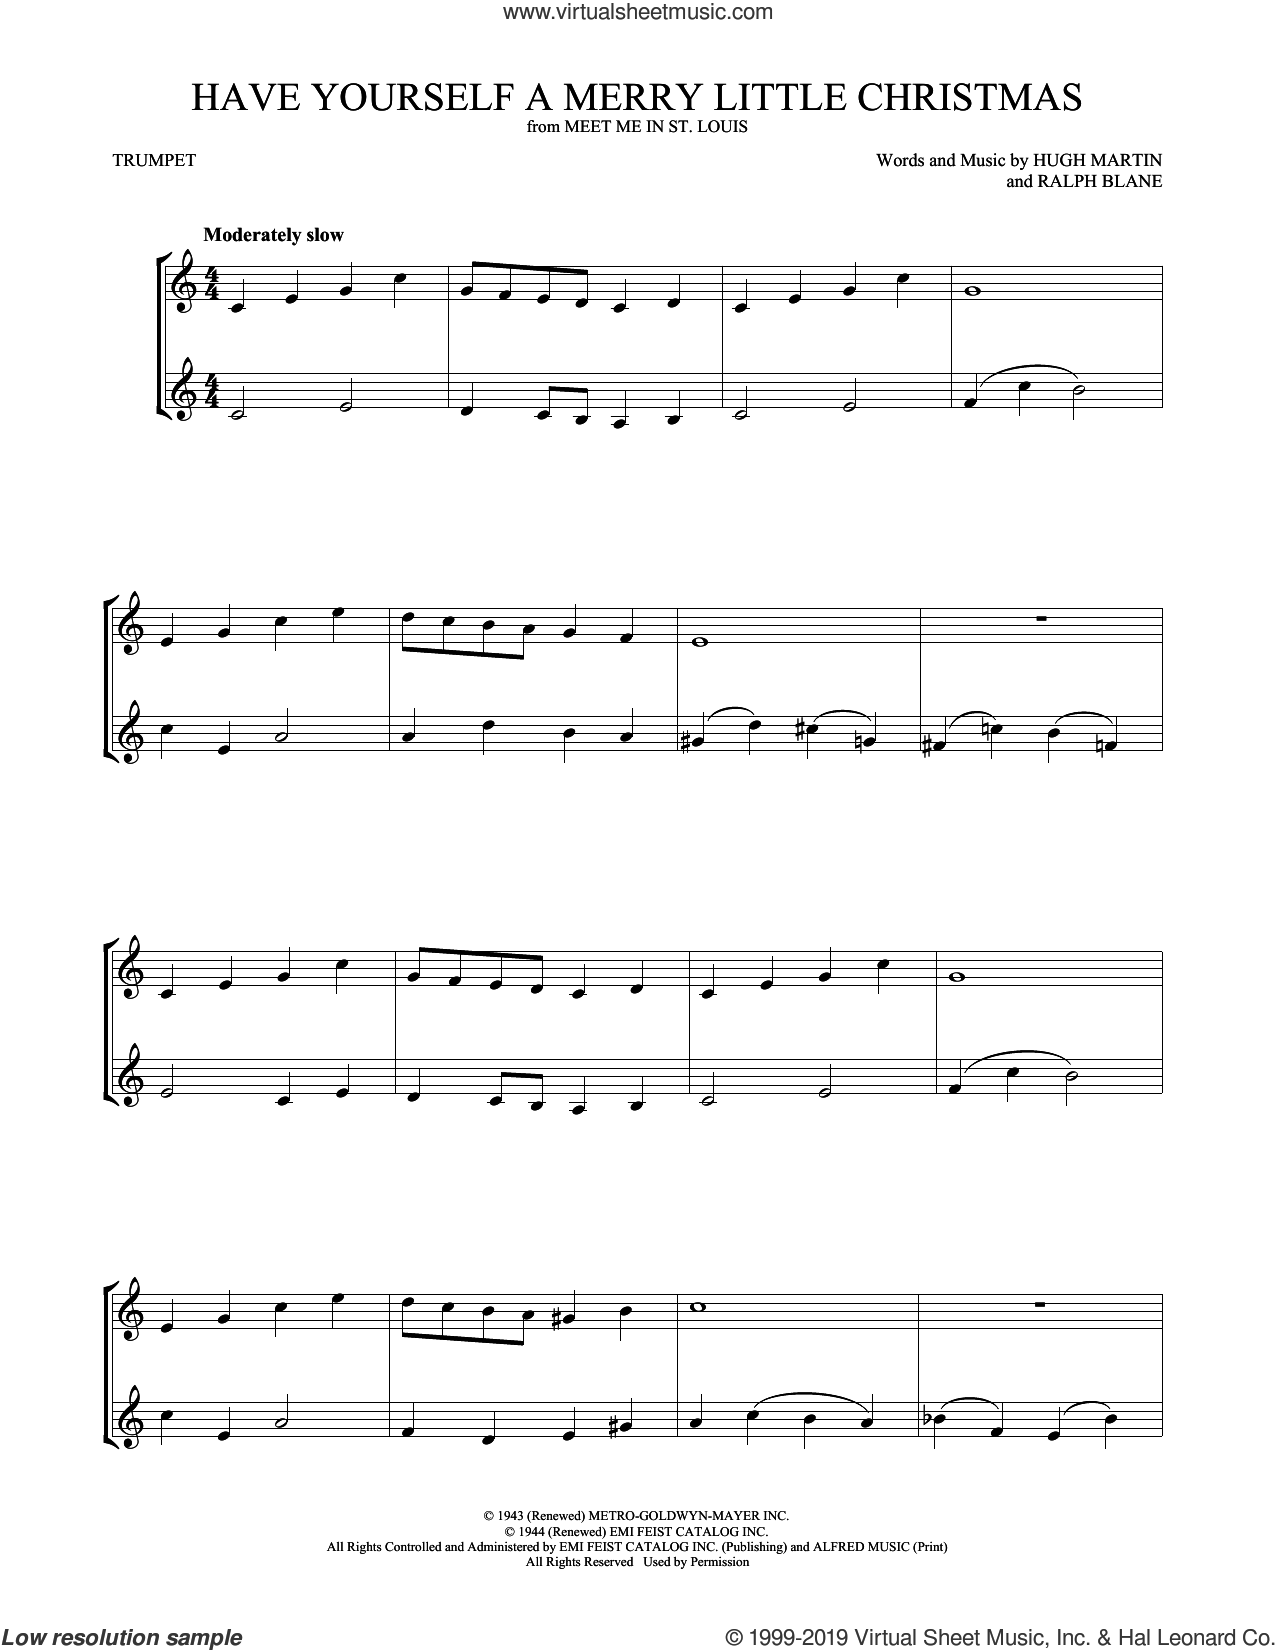 Have Yourself A Merry Little Christmas sheet music for two trumpets (duet, duets) by Hugh Martin and Ralph Blane, intermediate skill level